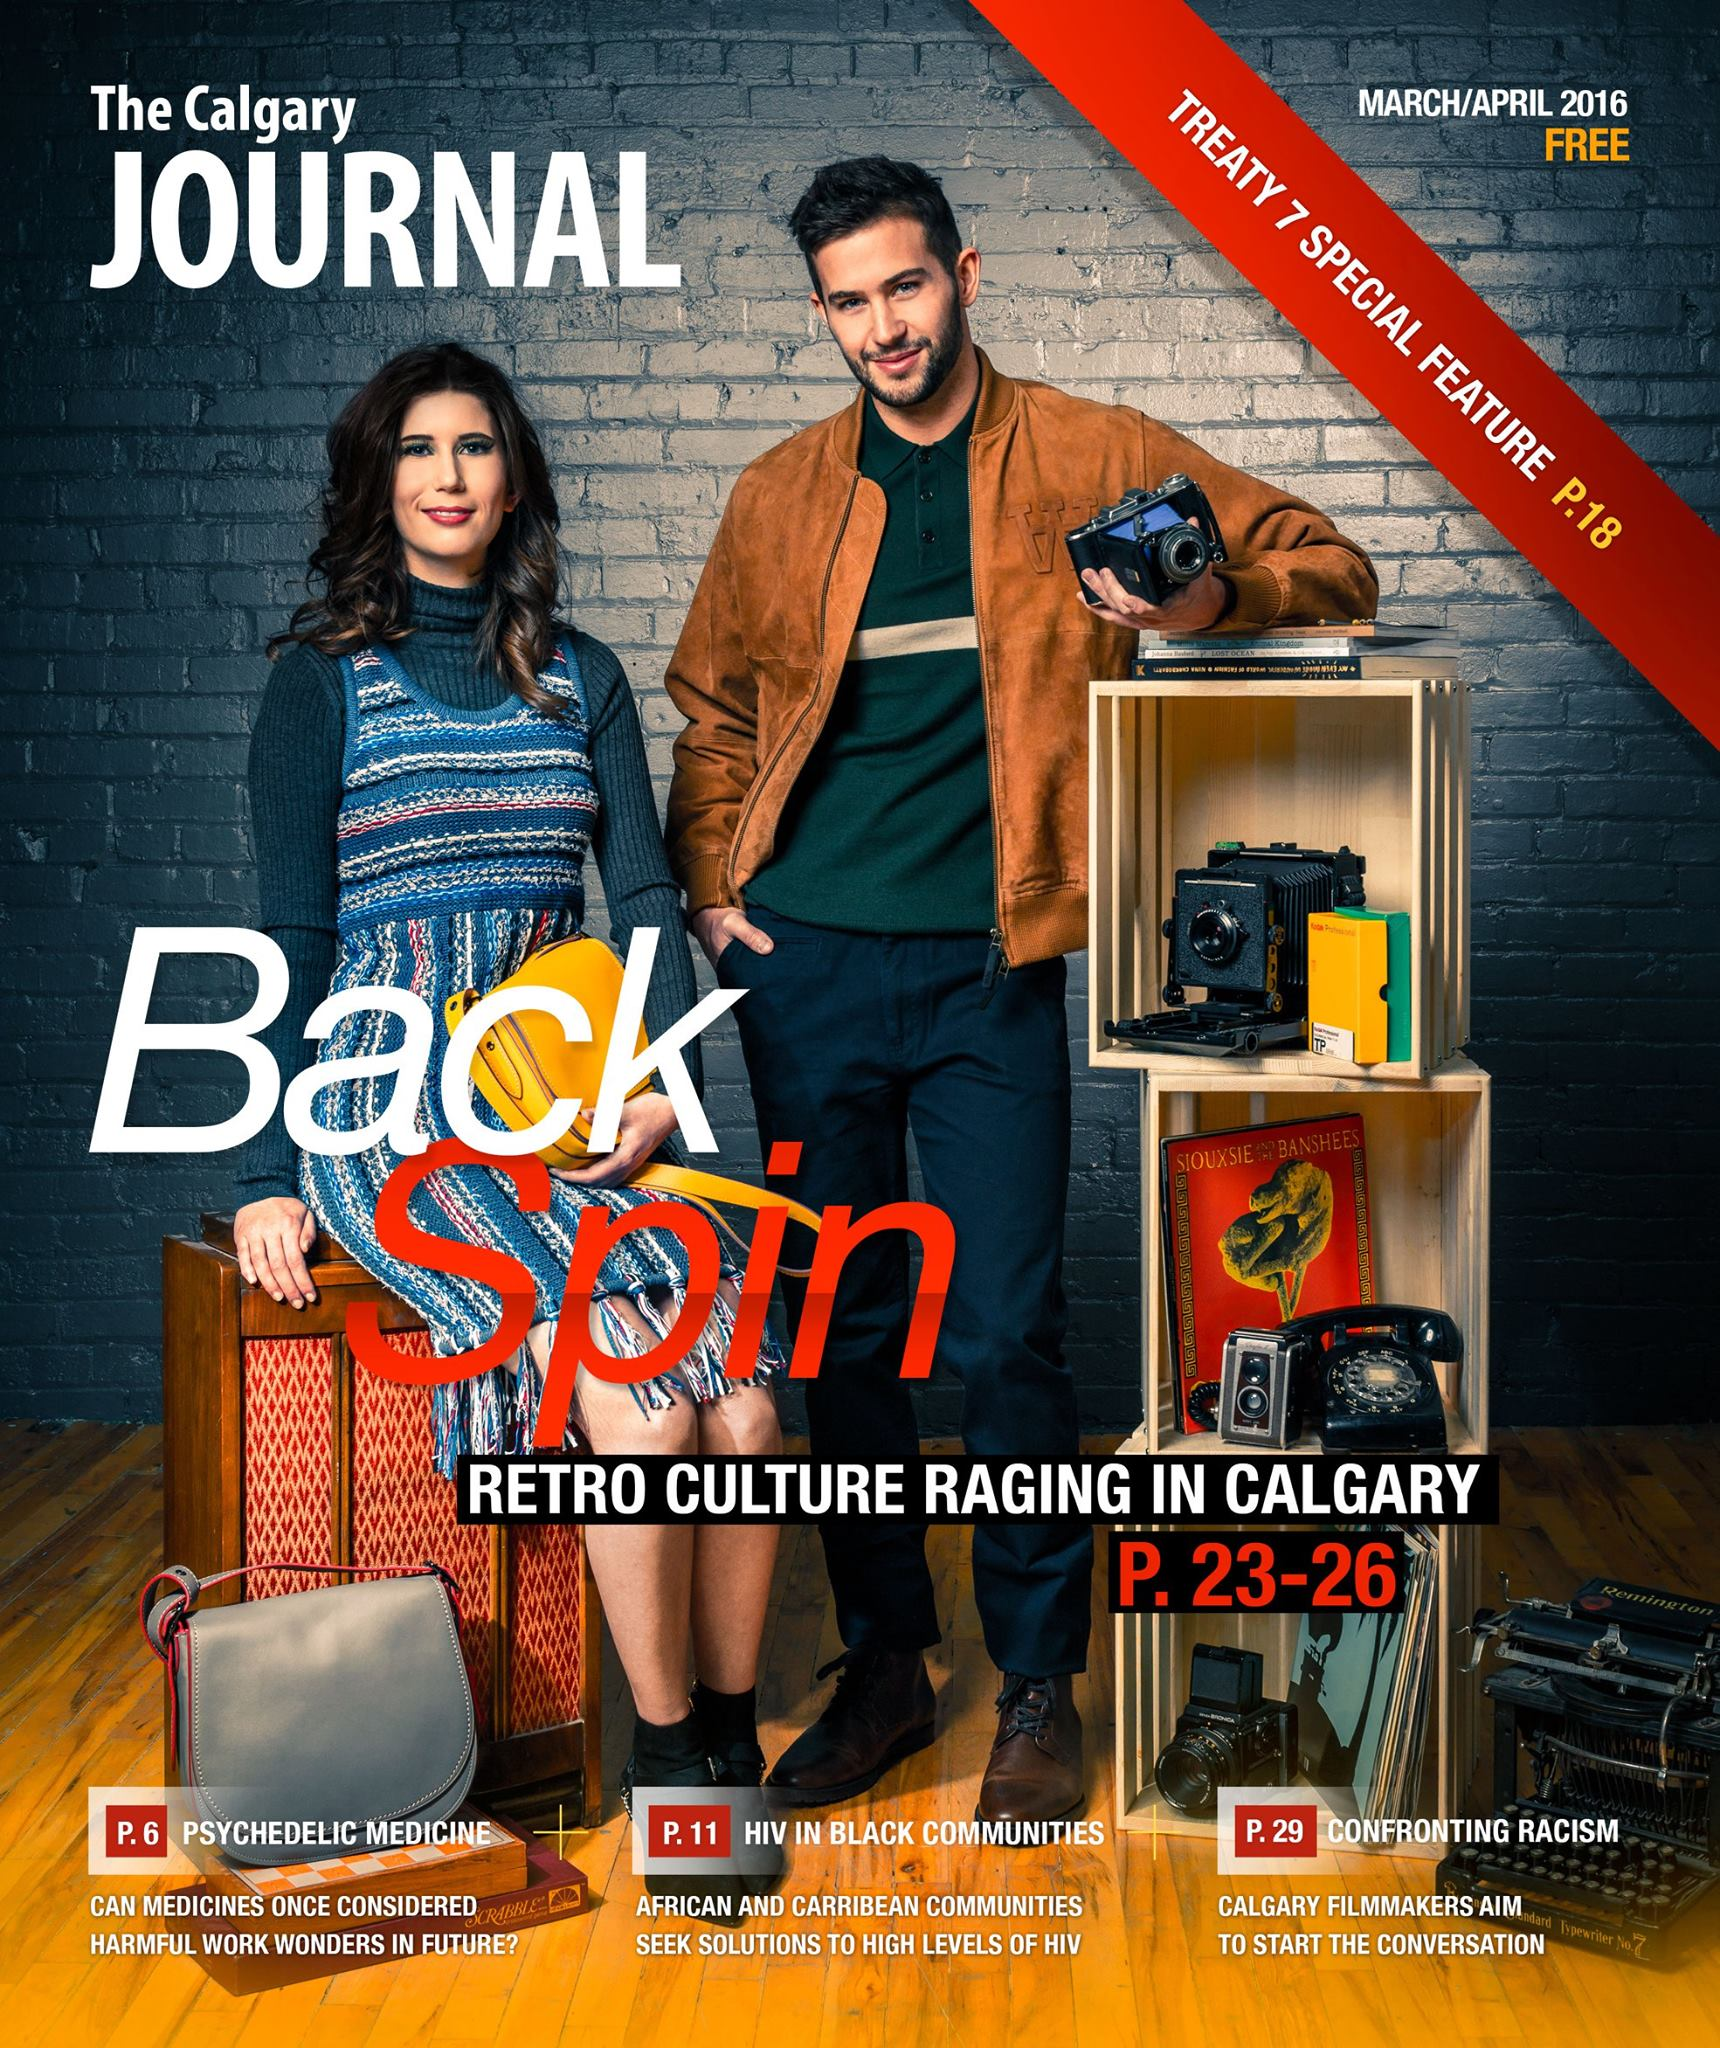 The Calgary Journal march/april 2016 issue